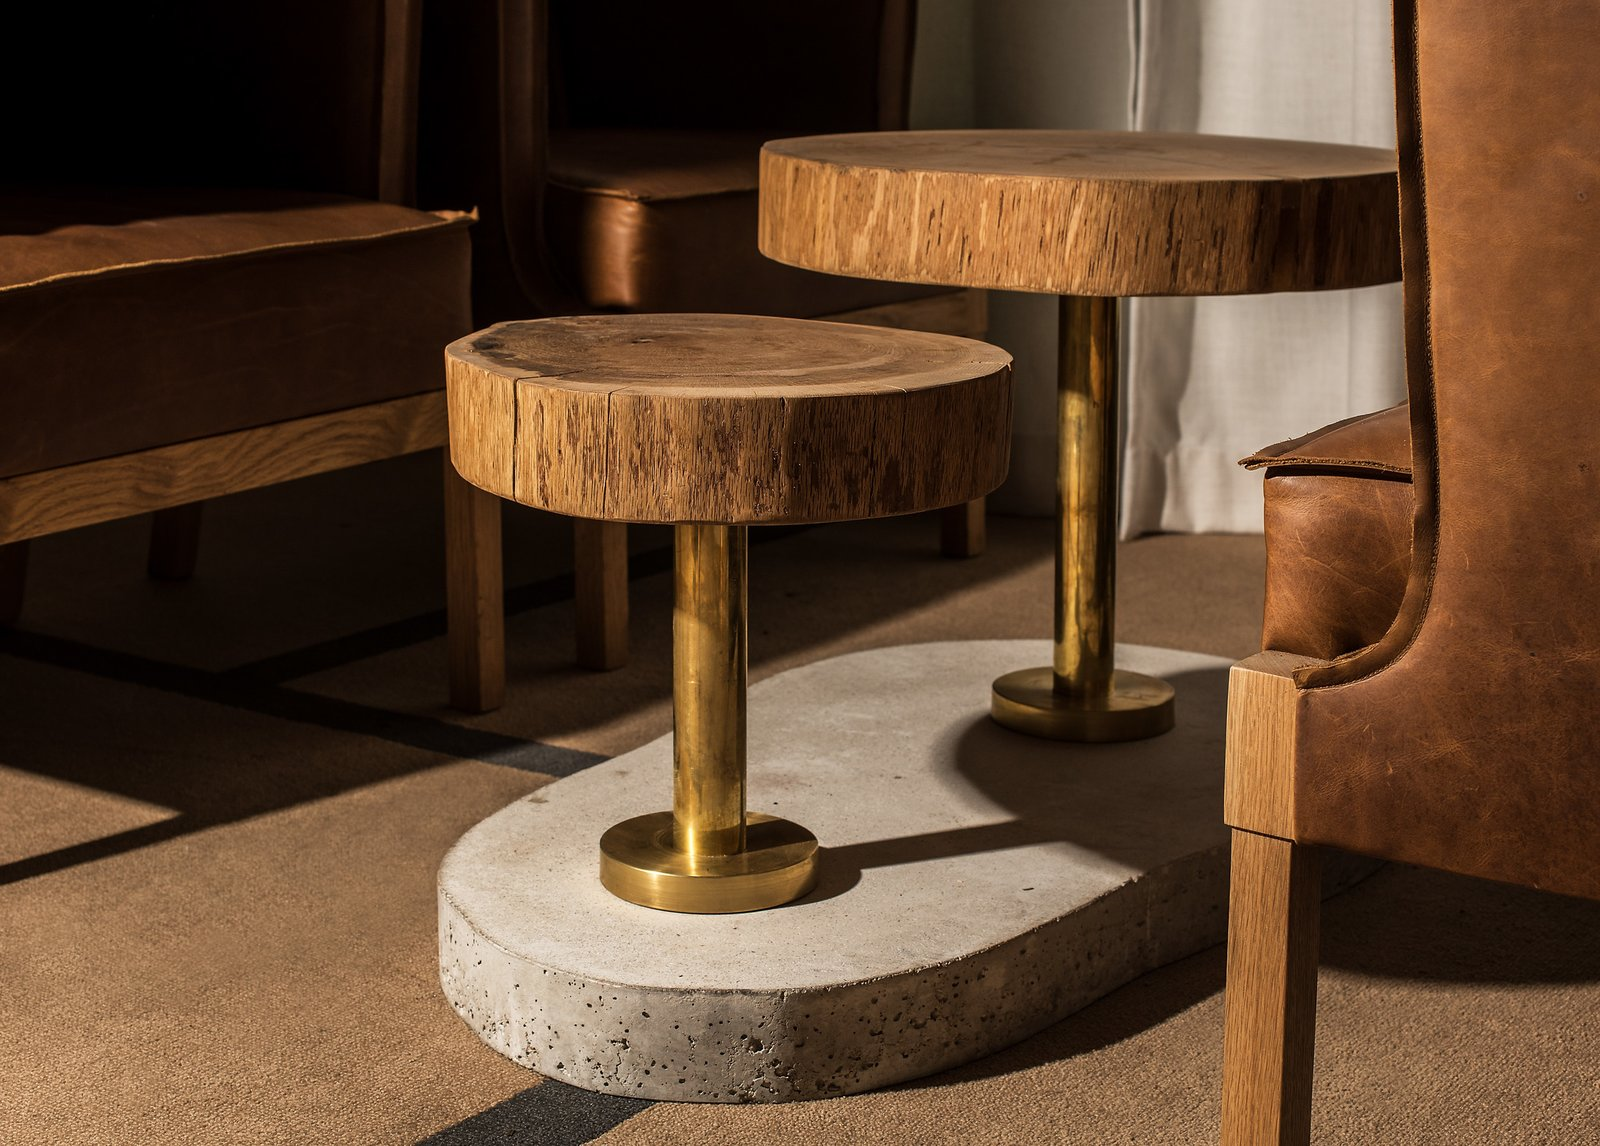 Dining Room, Table, Rug Floor, and Bench Keeping with the principles of organic architecture, few materials were used. Here, leather, brass, oak, and concrete create a natural and warm setting.  Photo 12 of 12 in Run, Don't Walk to This Frank Lloyd Wright-Inspired Bar in Chicago